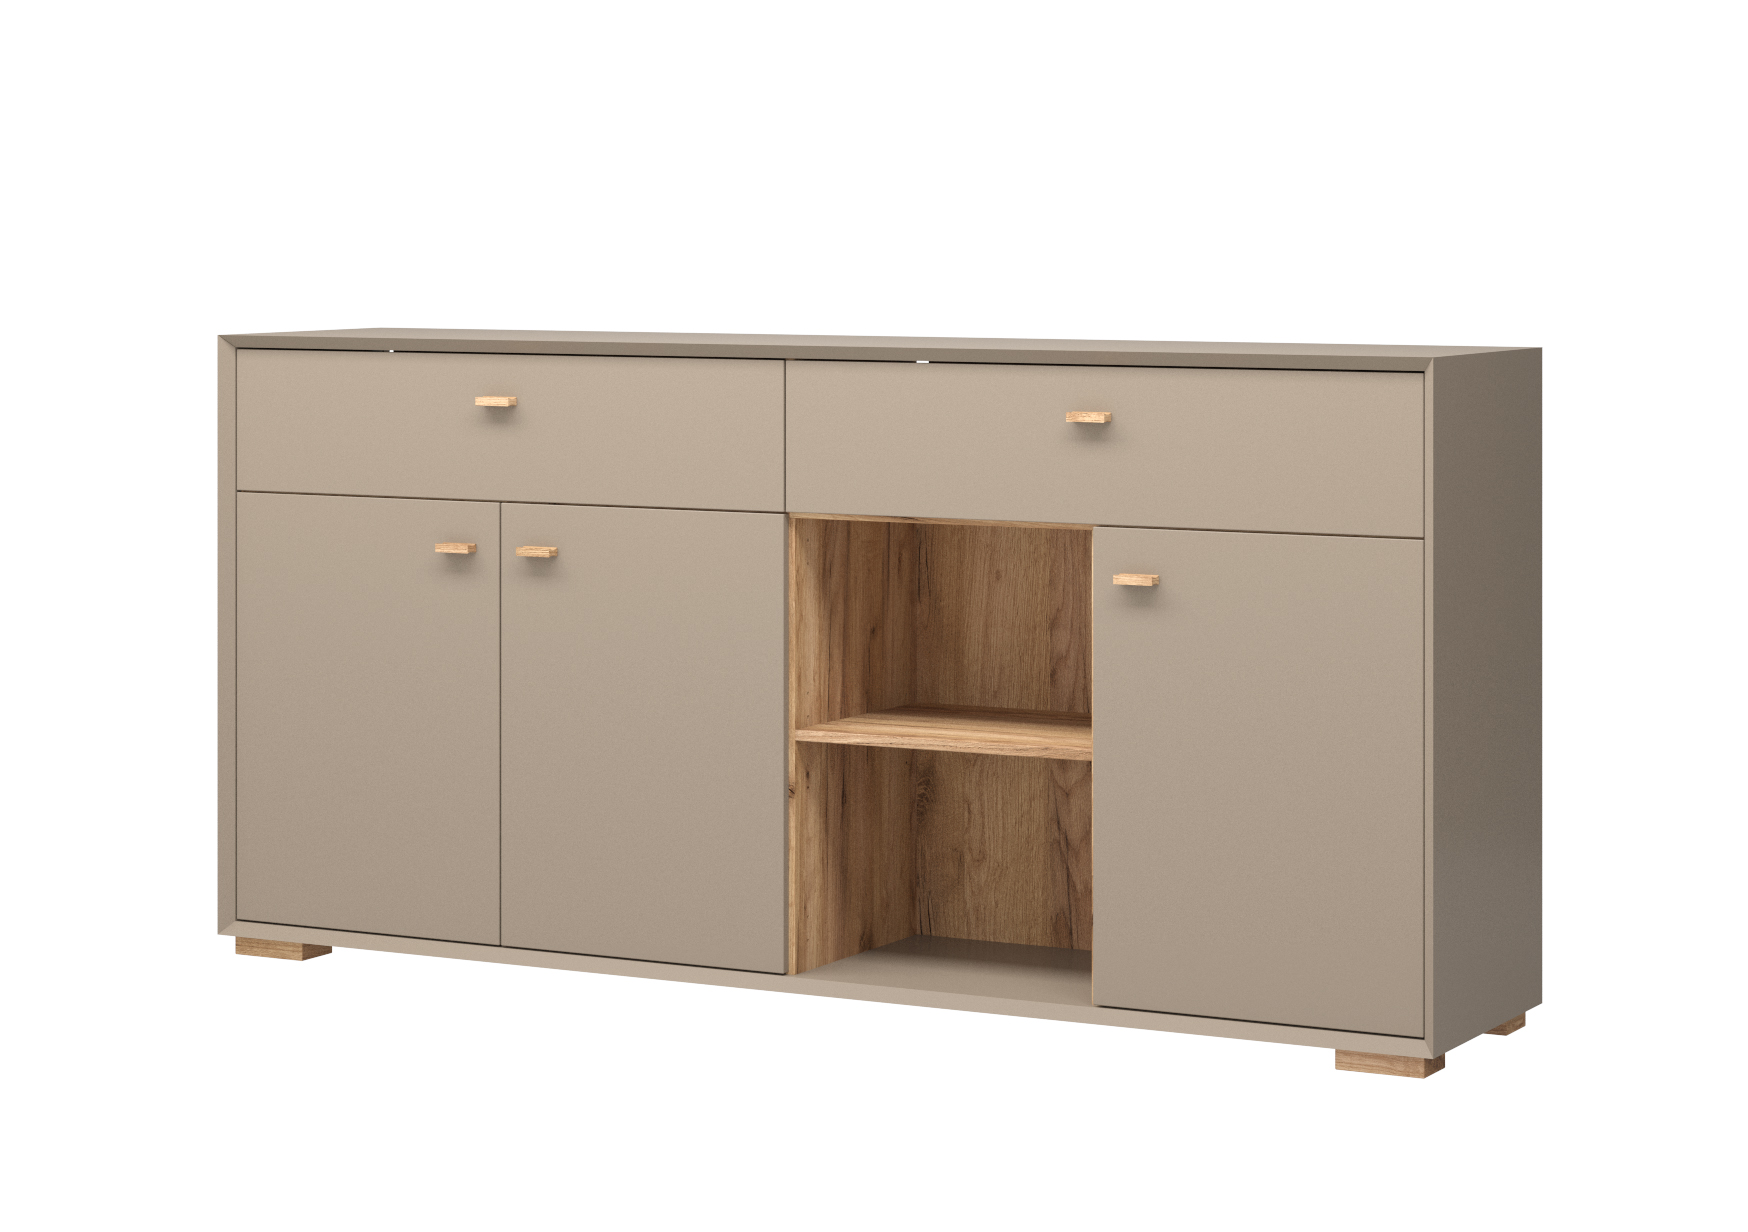 sideboard f hr steingrau navarra eiche nb kommode schrank anrichte m bel wohnen schr nke. Black Bedroom Furniture Sets. Home Design Ideas